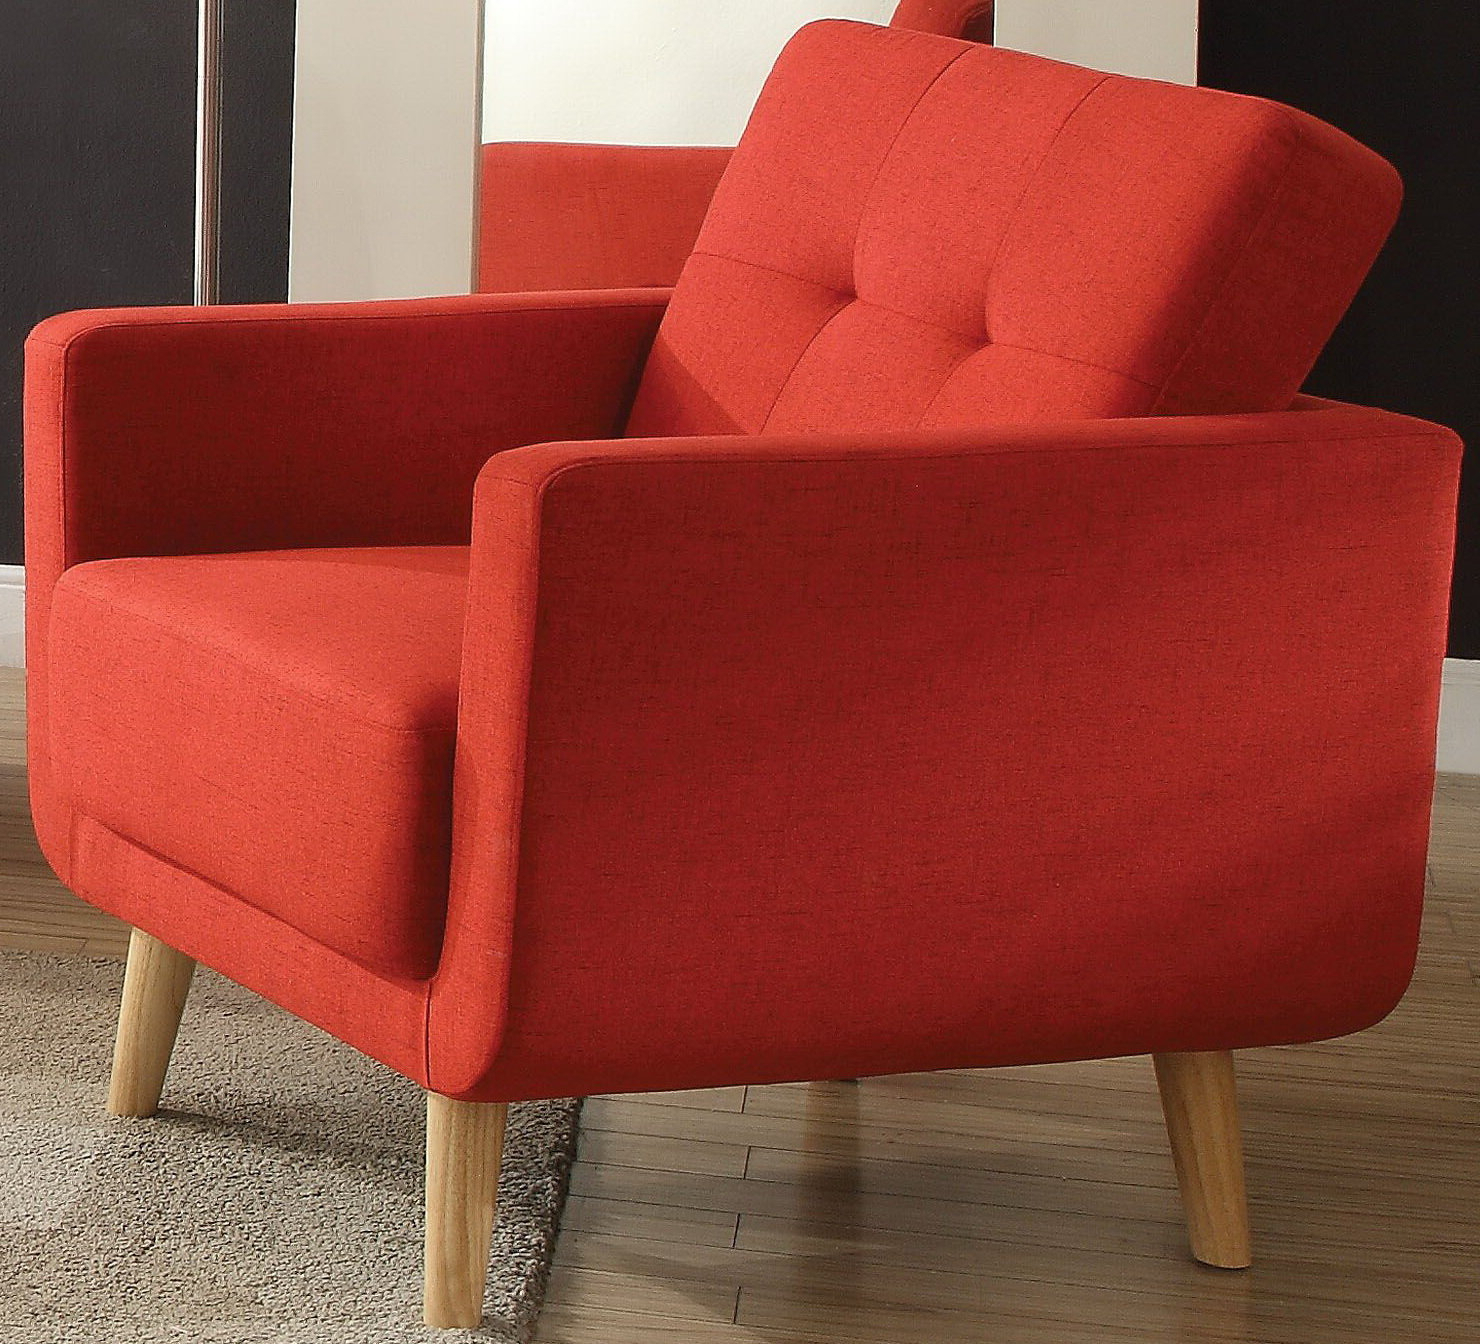 Nestor Armchair With Regard To Most Up To Date Nestor Wingback Chairs (View 3 of 20)